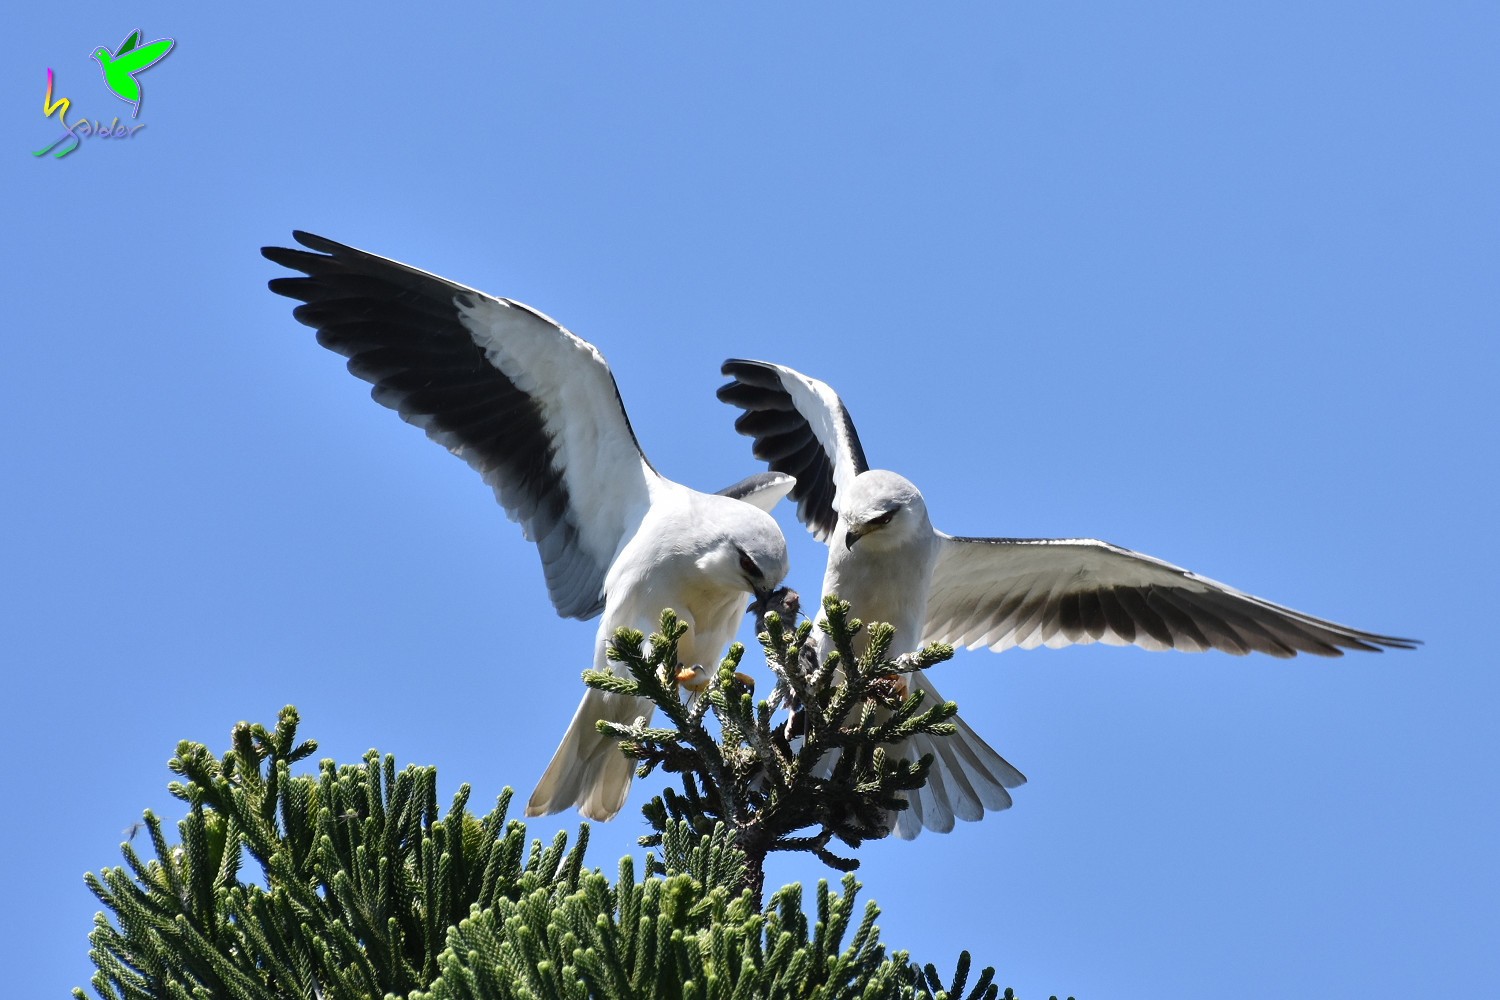 Black-winged_Kite_1927